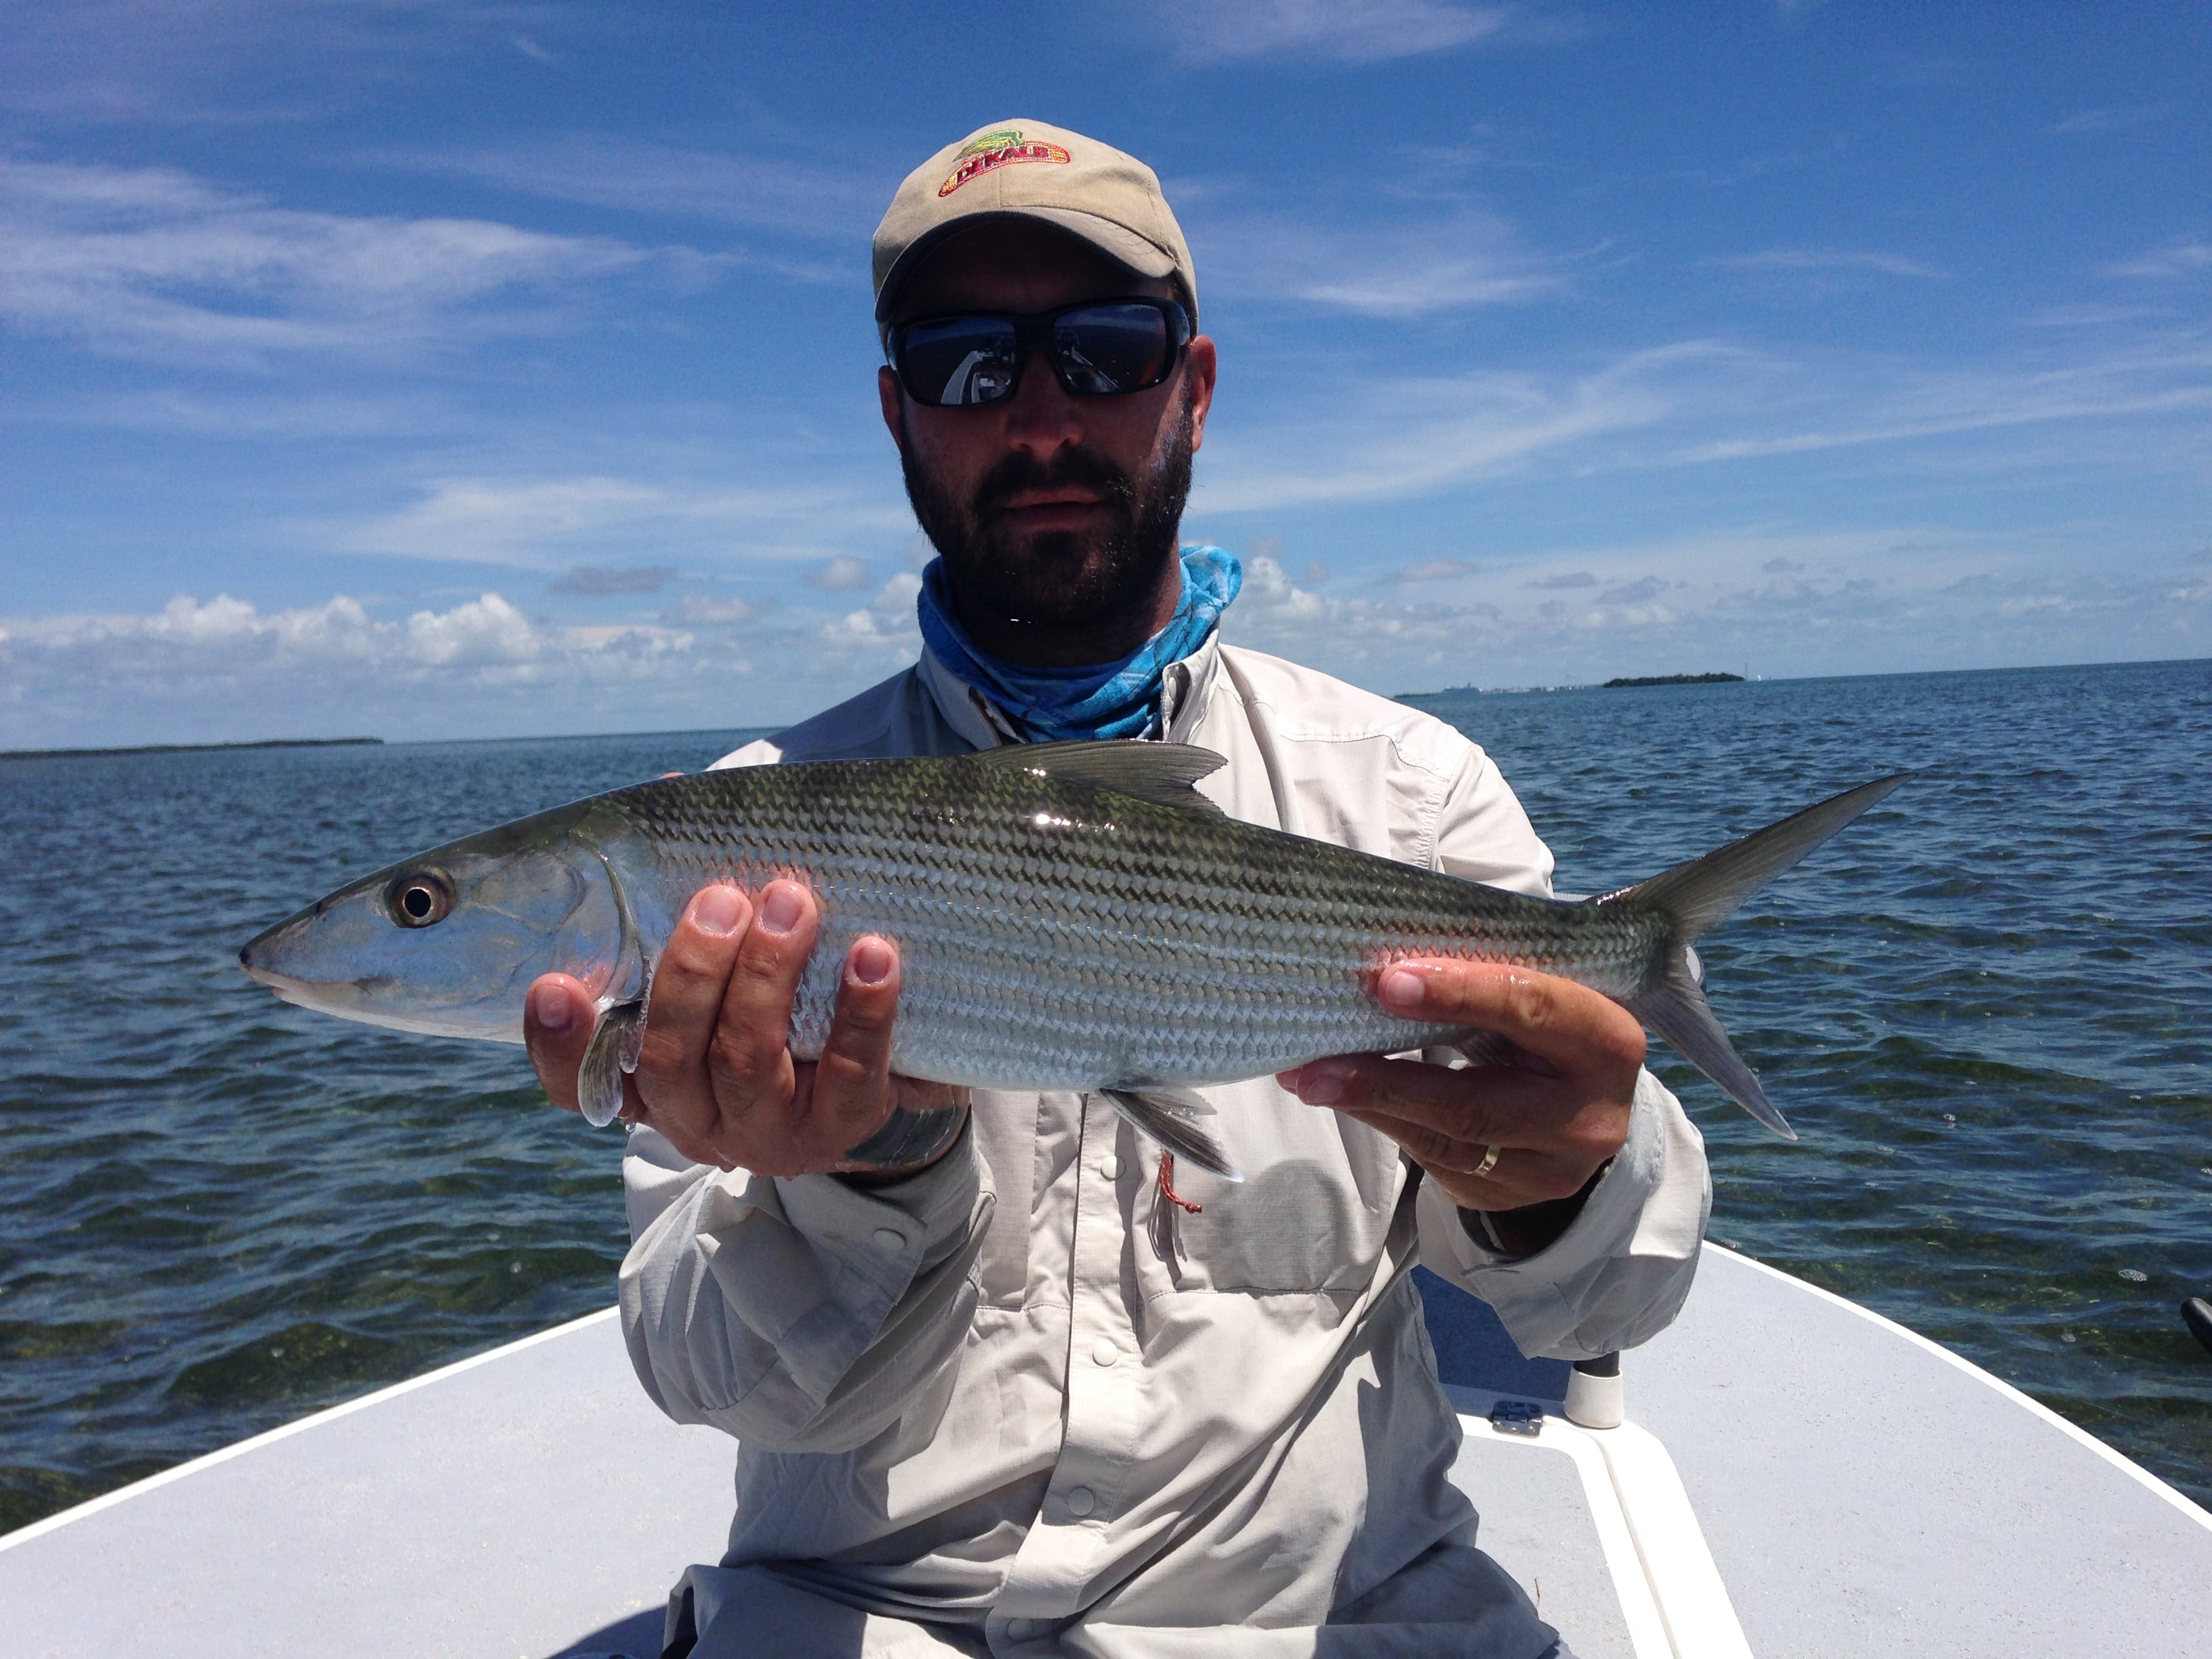 A bonefish for 2/3 of the slam, Superfly 2015. Guiding/photo Aaron Snell, fly Dave Skok